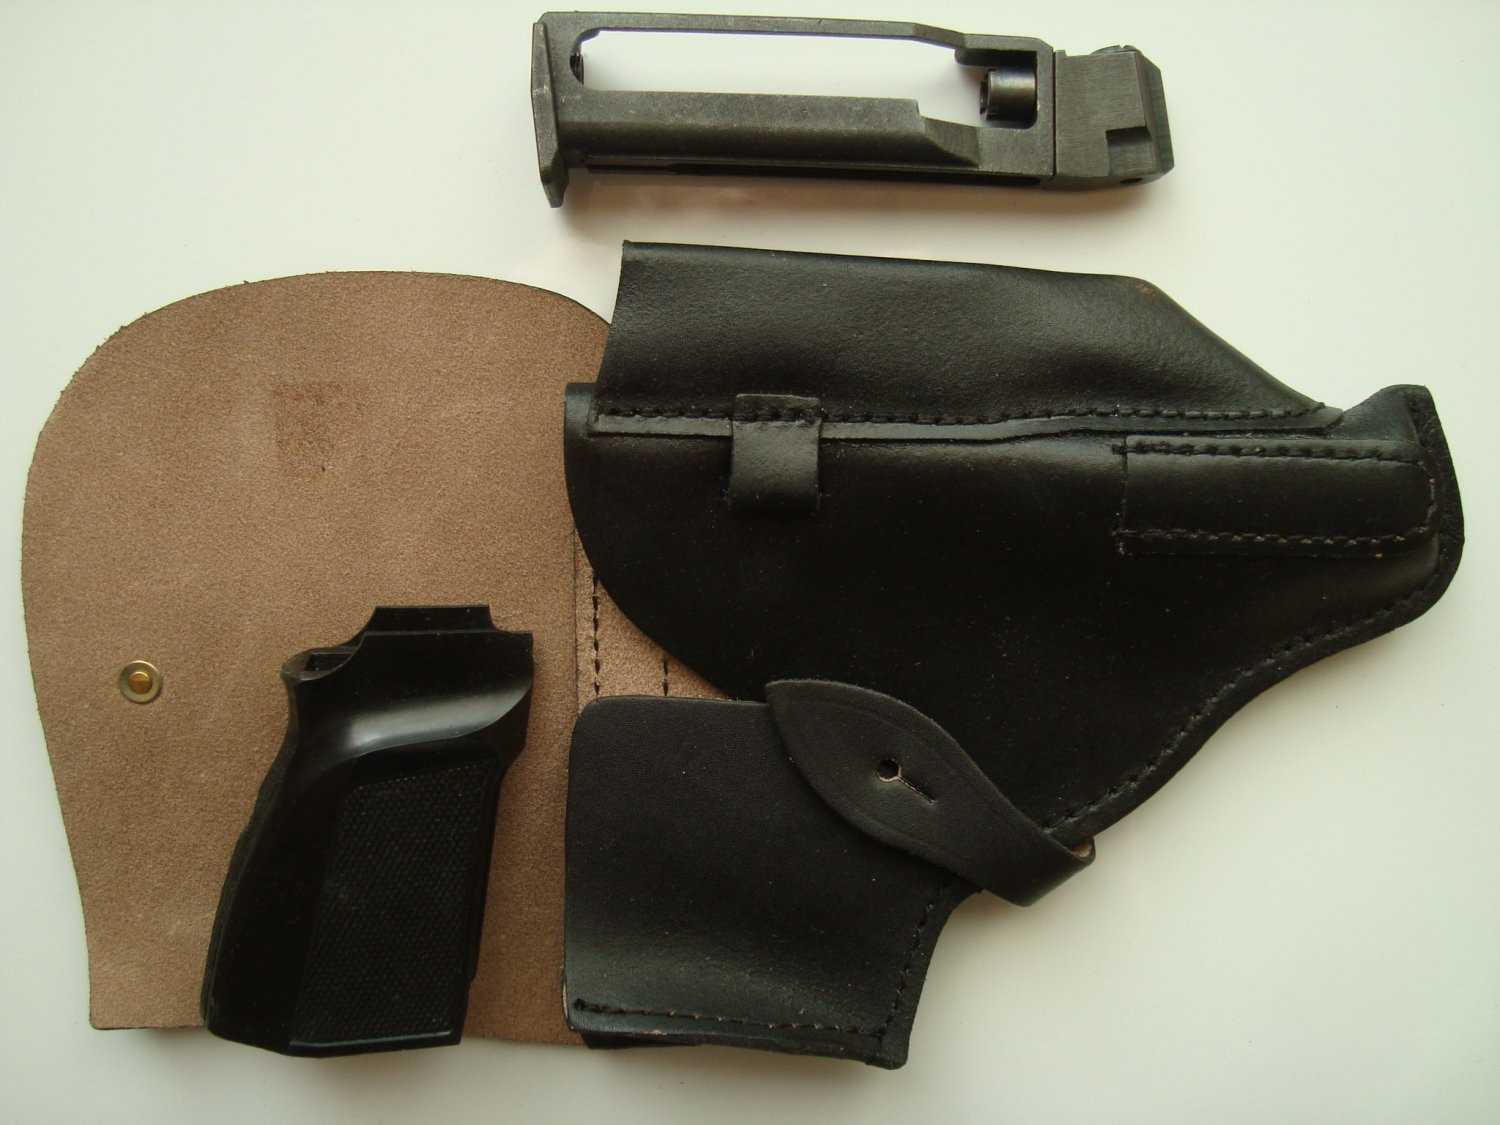 MP-654K holster of leather, handle ergonomic, screw for grip, tuning Baikal parts original PMM style